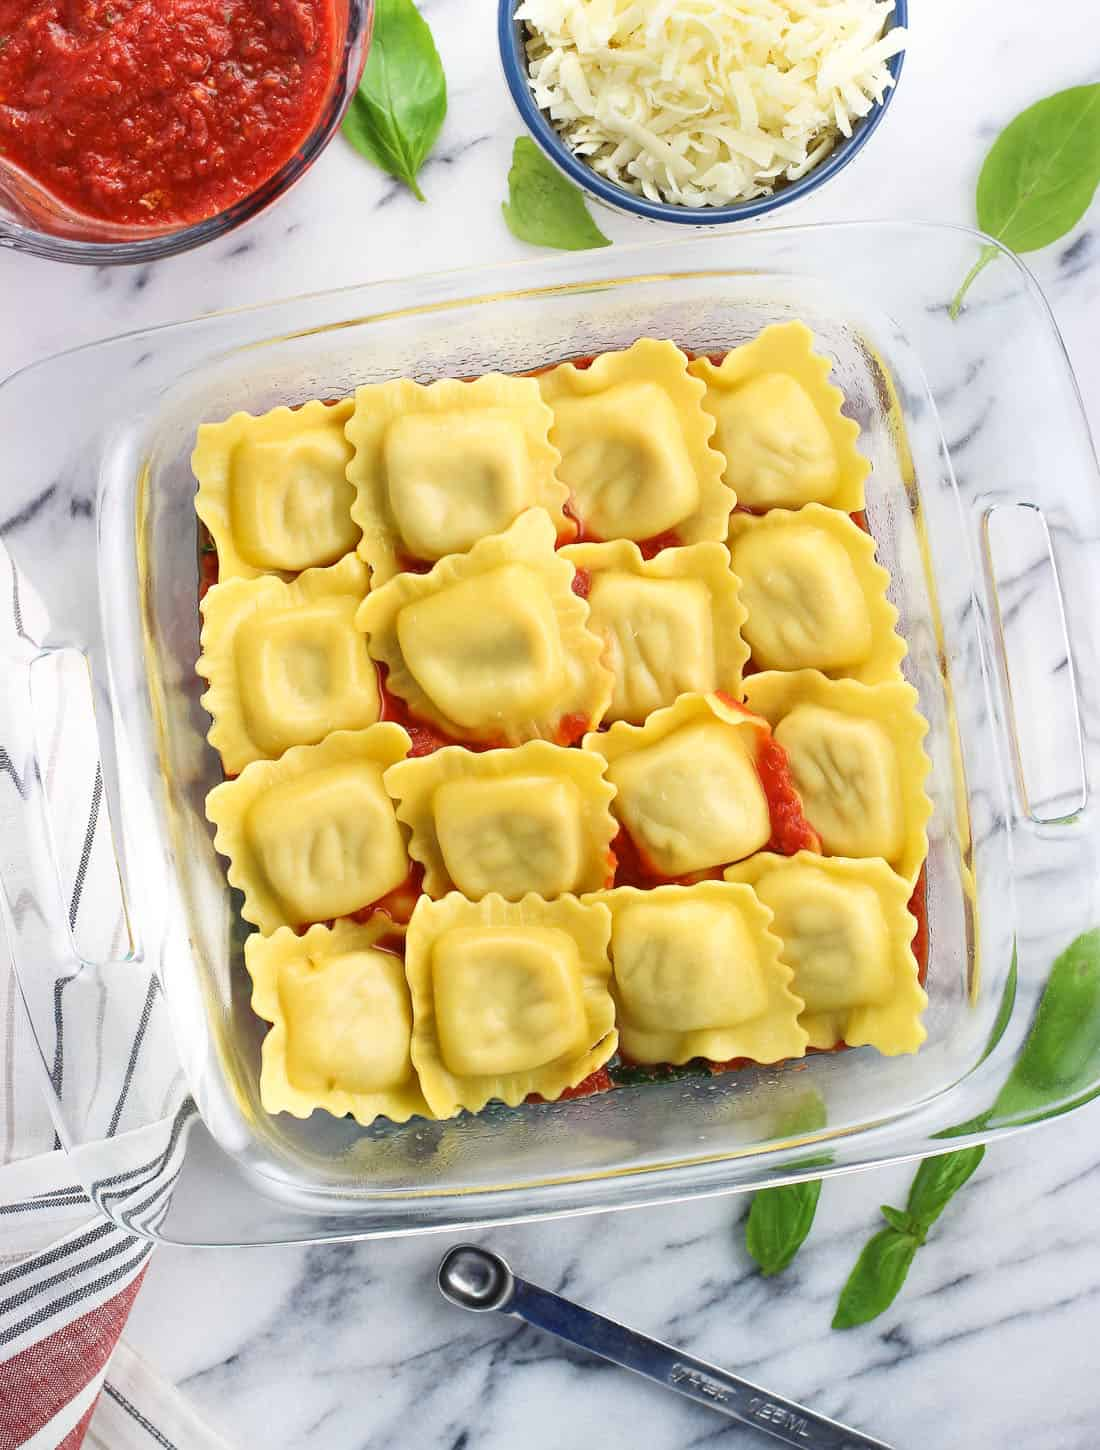 Spinach, sauce, and ravioli layered in a square glass baking dish.